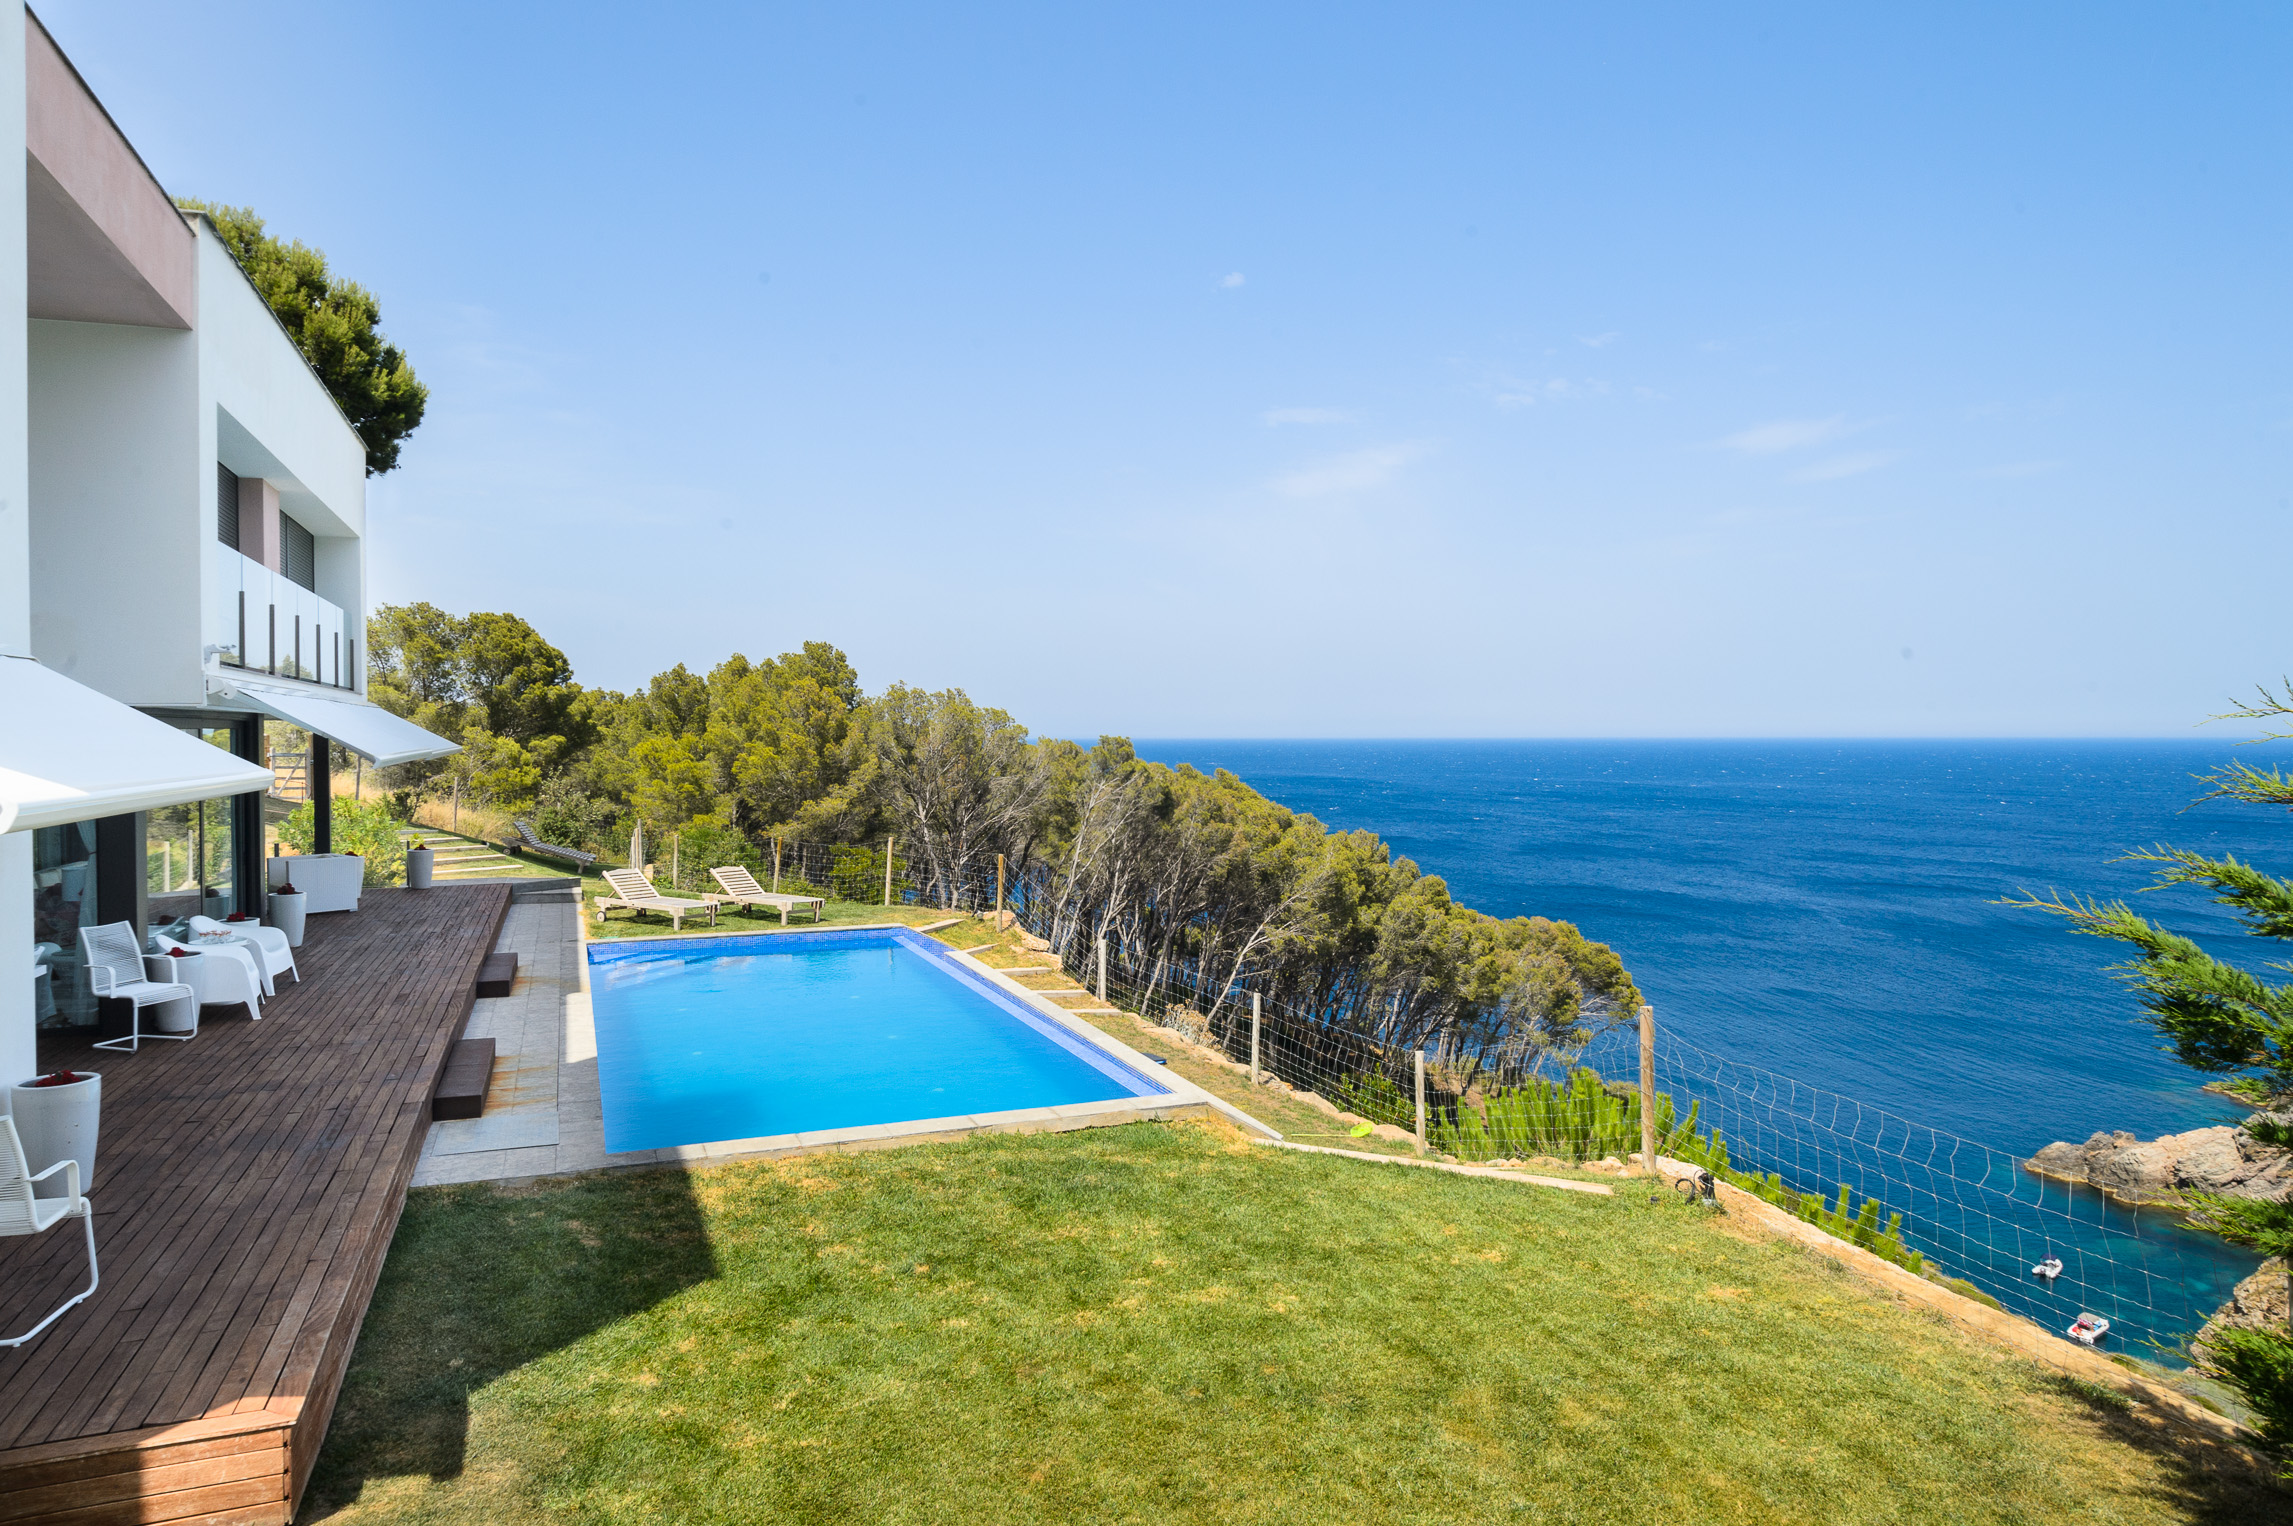 Single Family Home for Sale at Wonderful house in front of the sea Begur, Costa Brava, 17255 Spain